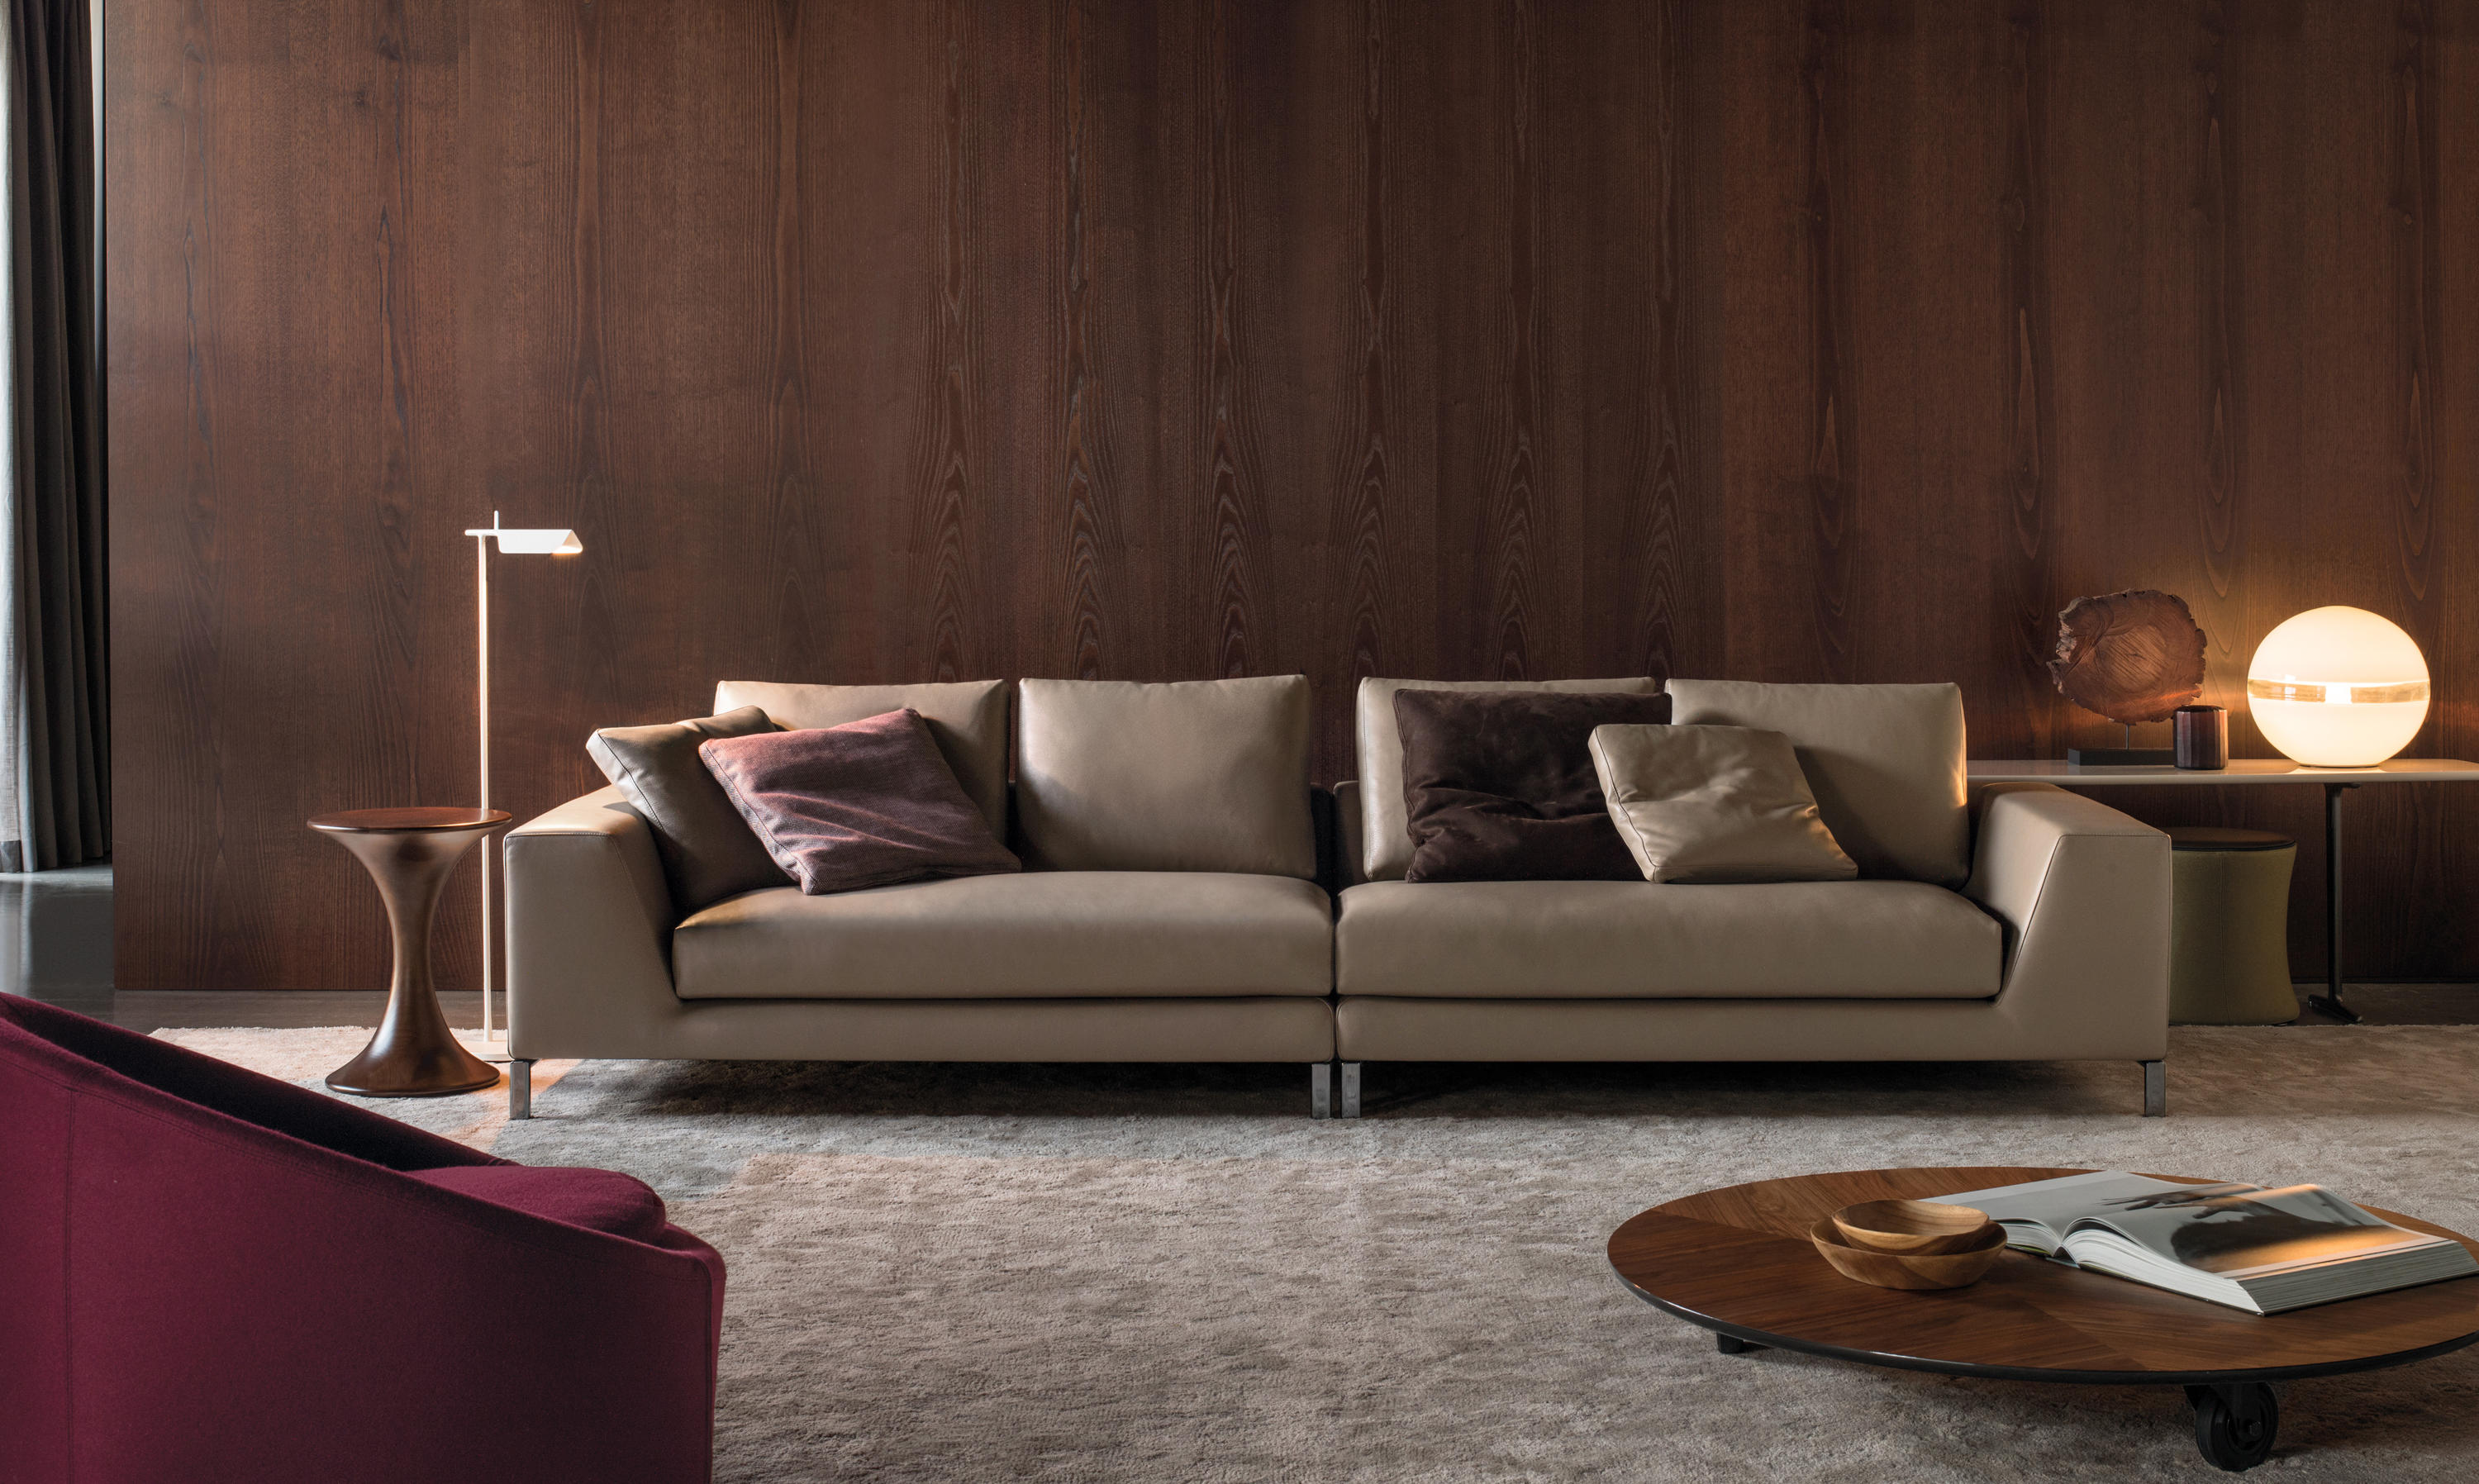 hamilton islands lounge sofas from minotti architonic. Black Bedroom Furniture Sets. Home Design Ideas